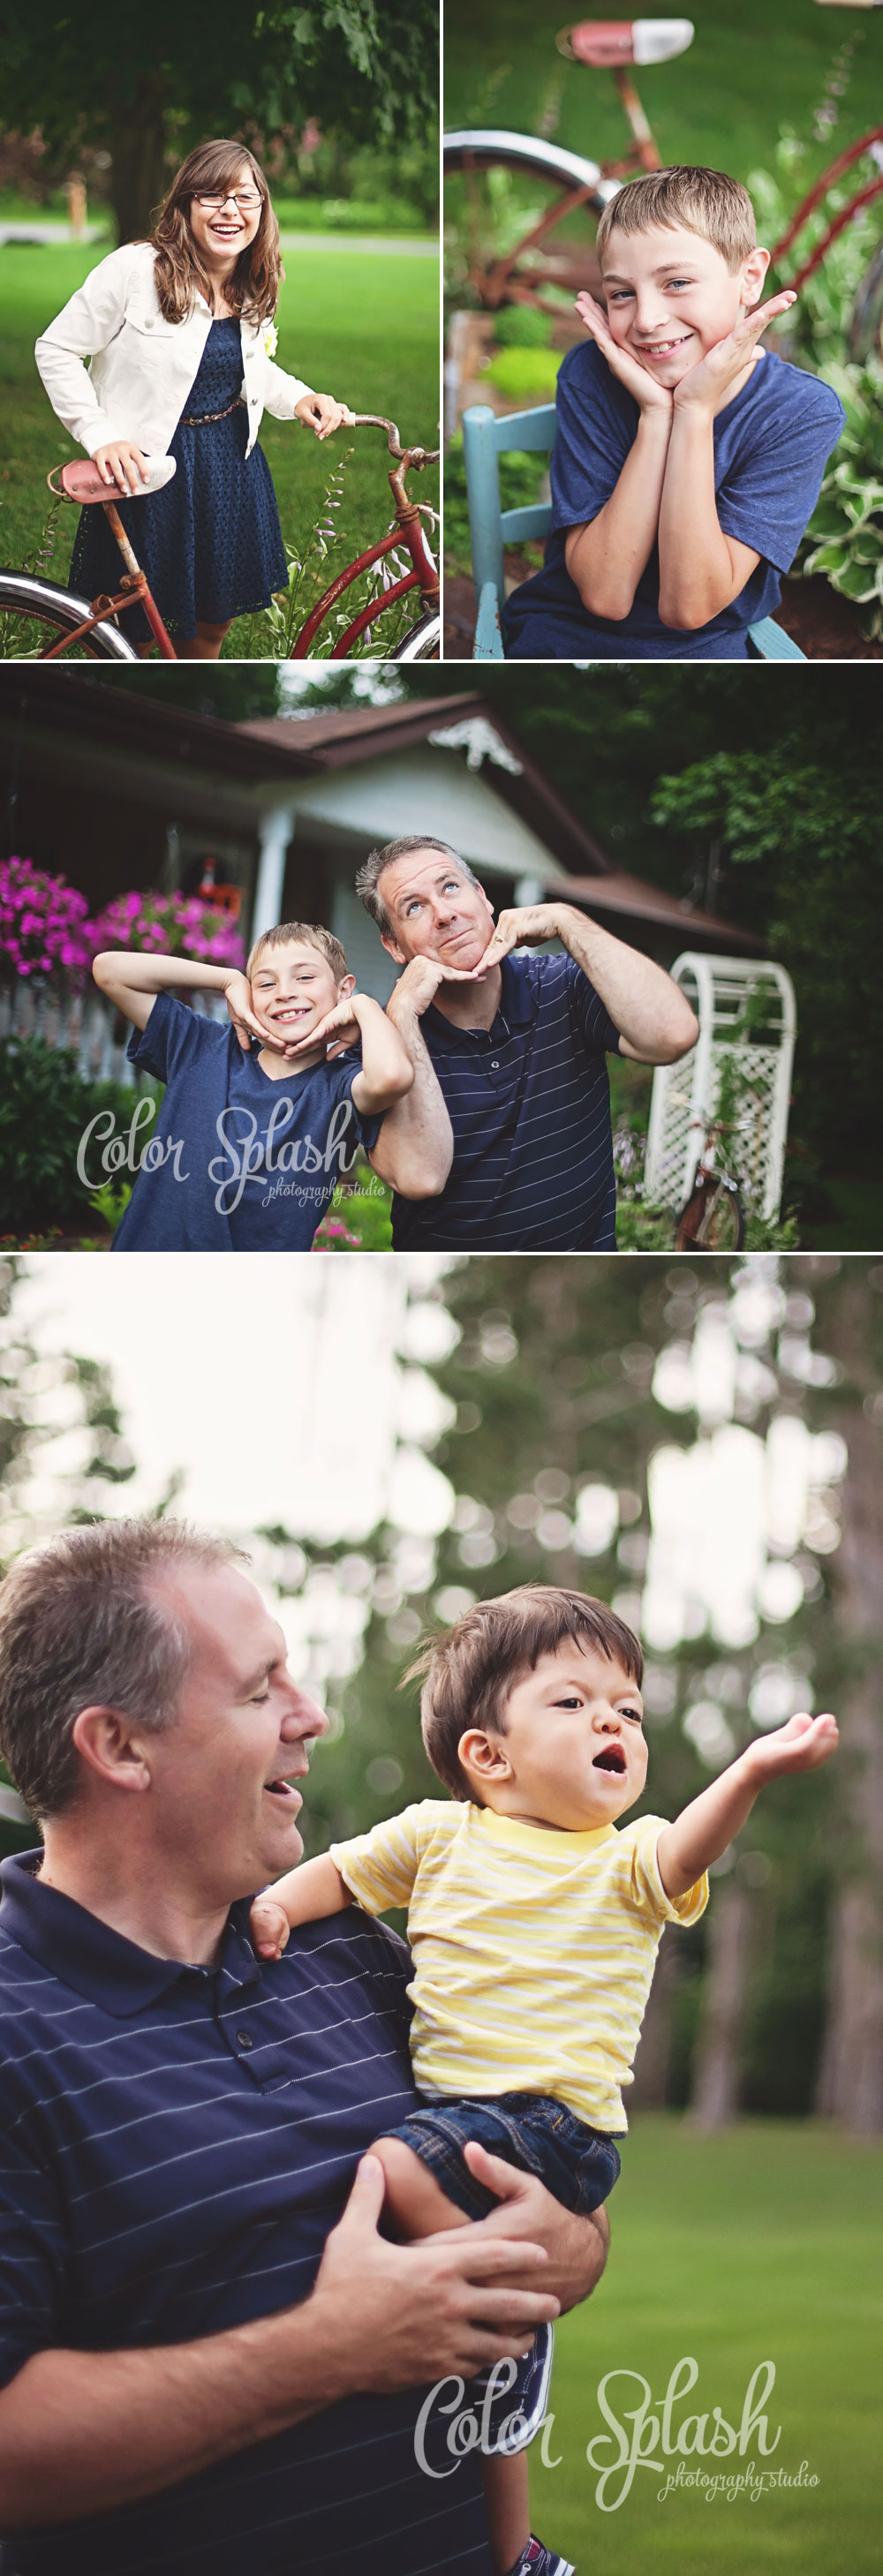 Color Splash Studio | Allegan Photographer